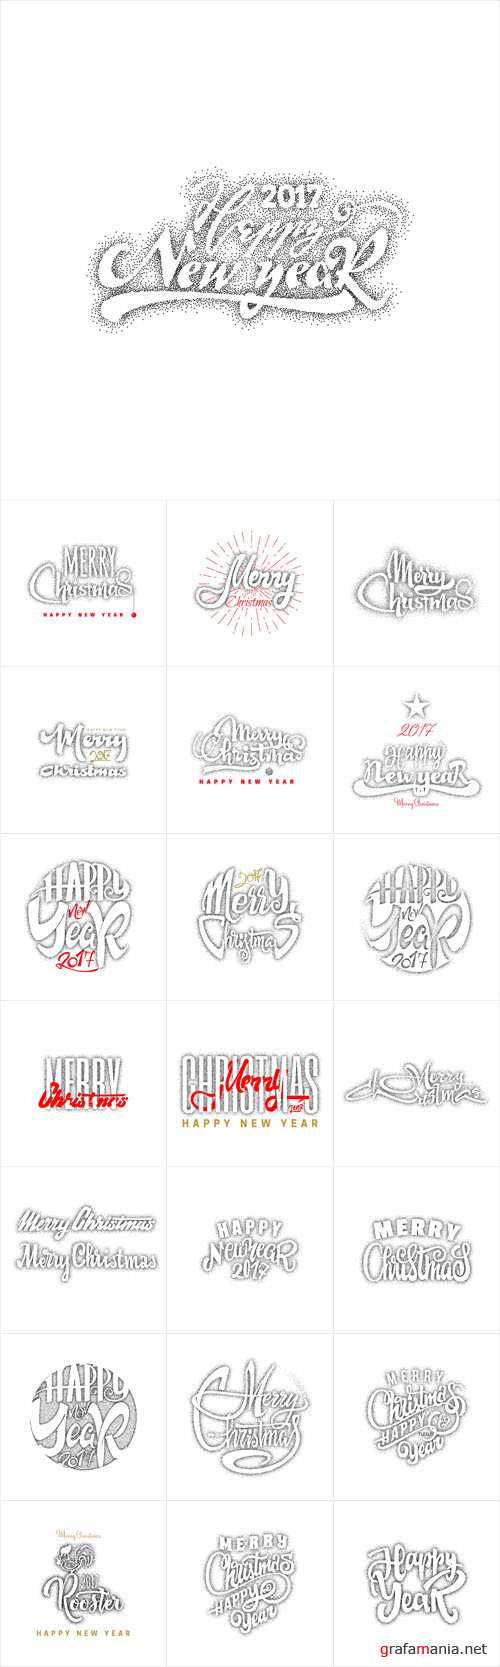 Vector Merry Christmas and Happy New Year 2017, Hand Drawn Dotwork